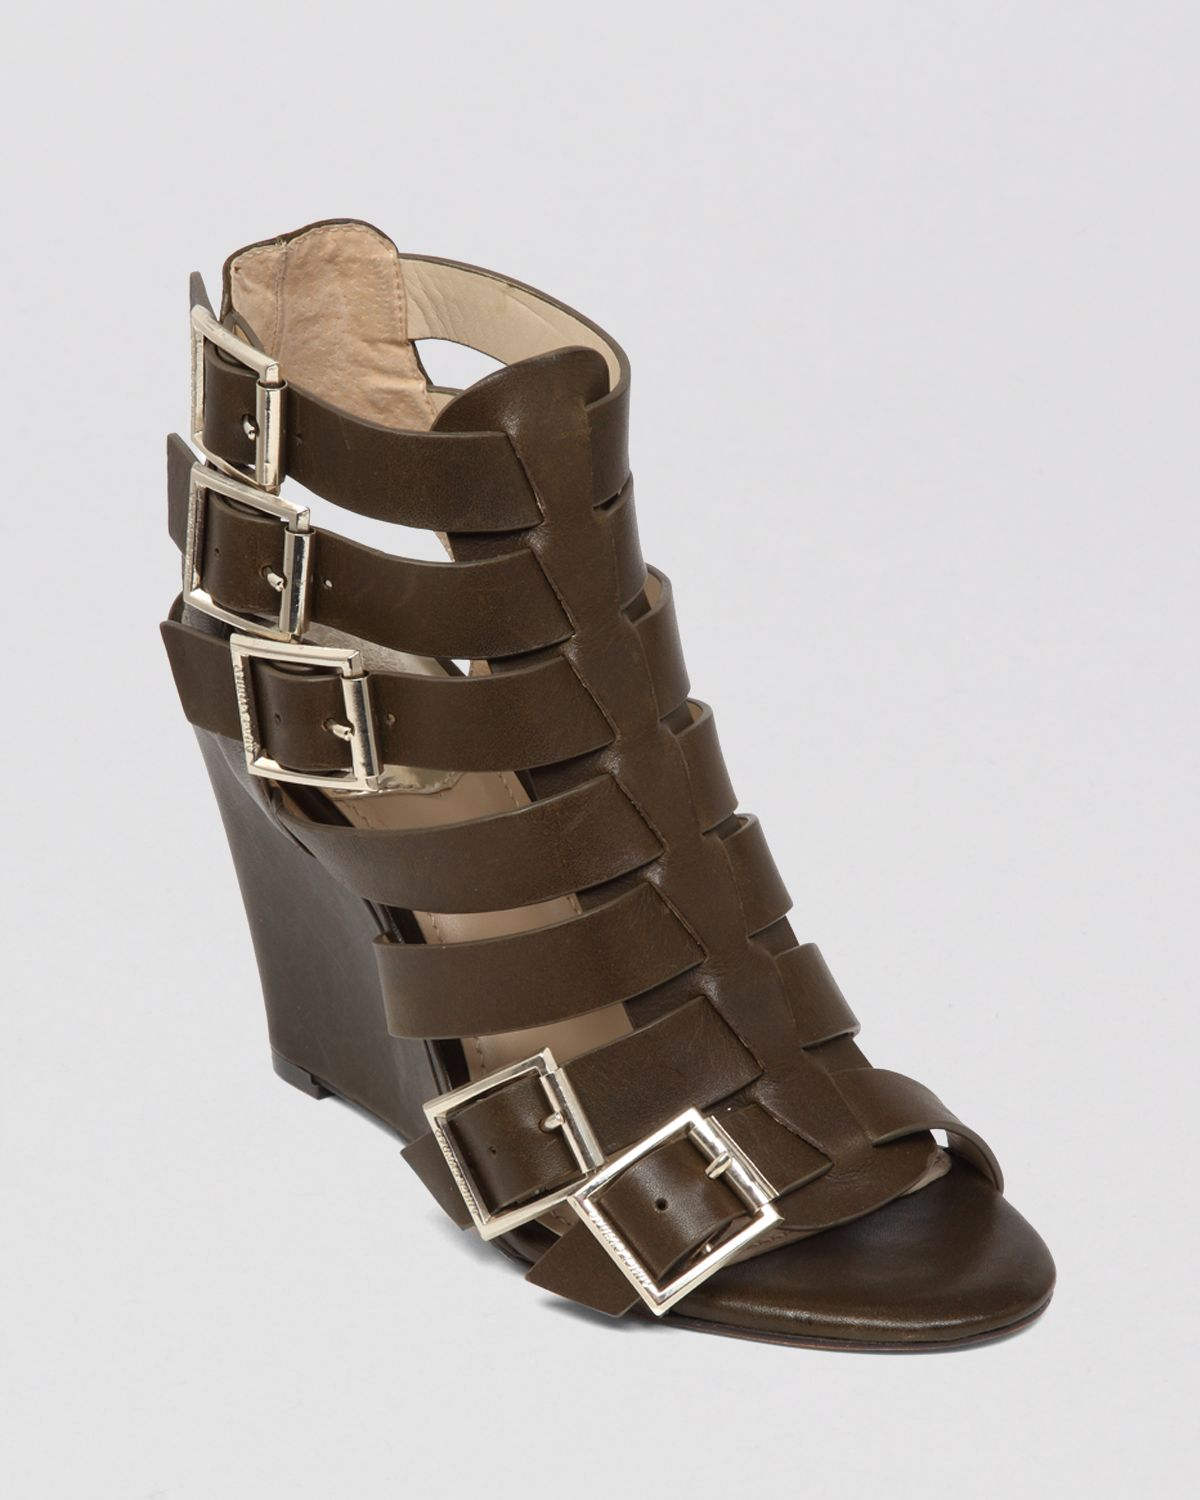 Lyst Vince Camuto Gladiator Wedge Sandals Martez In Green